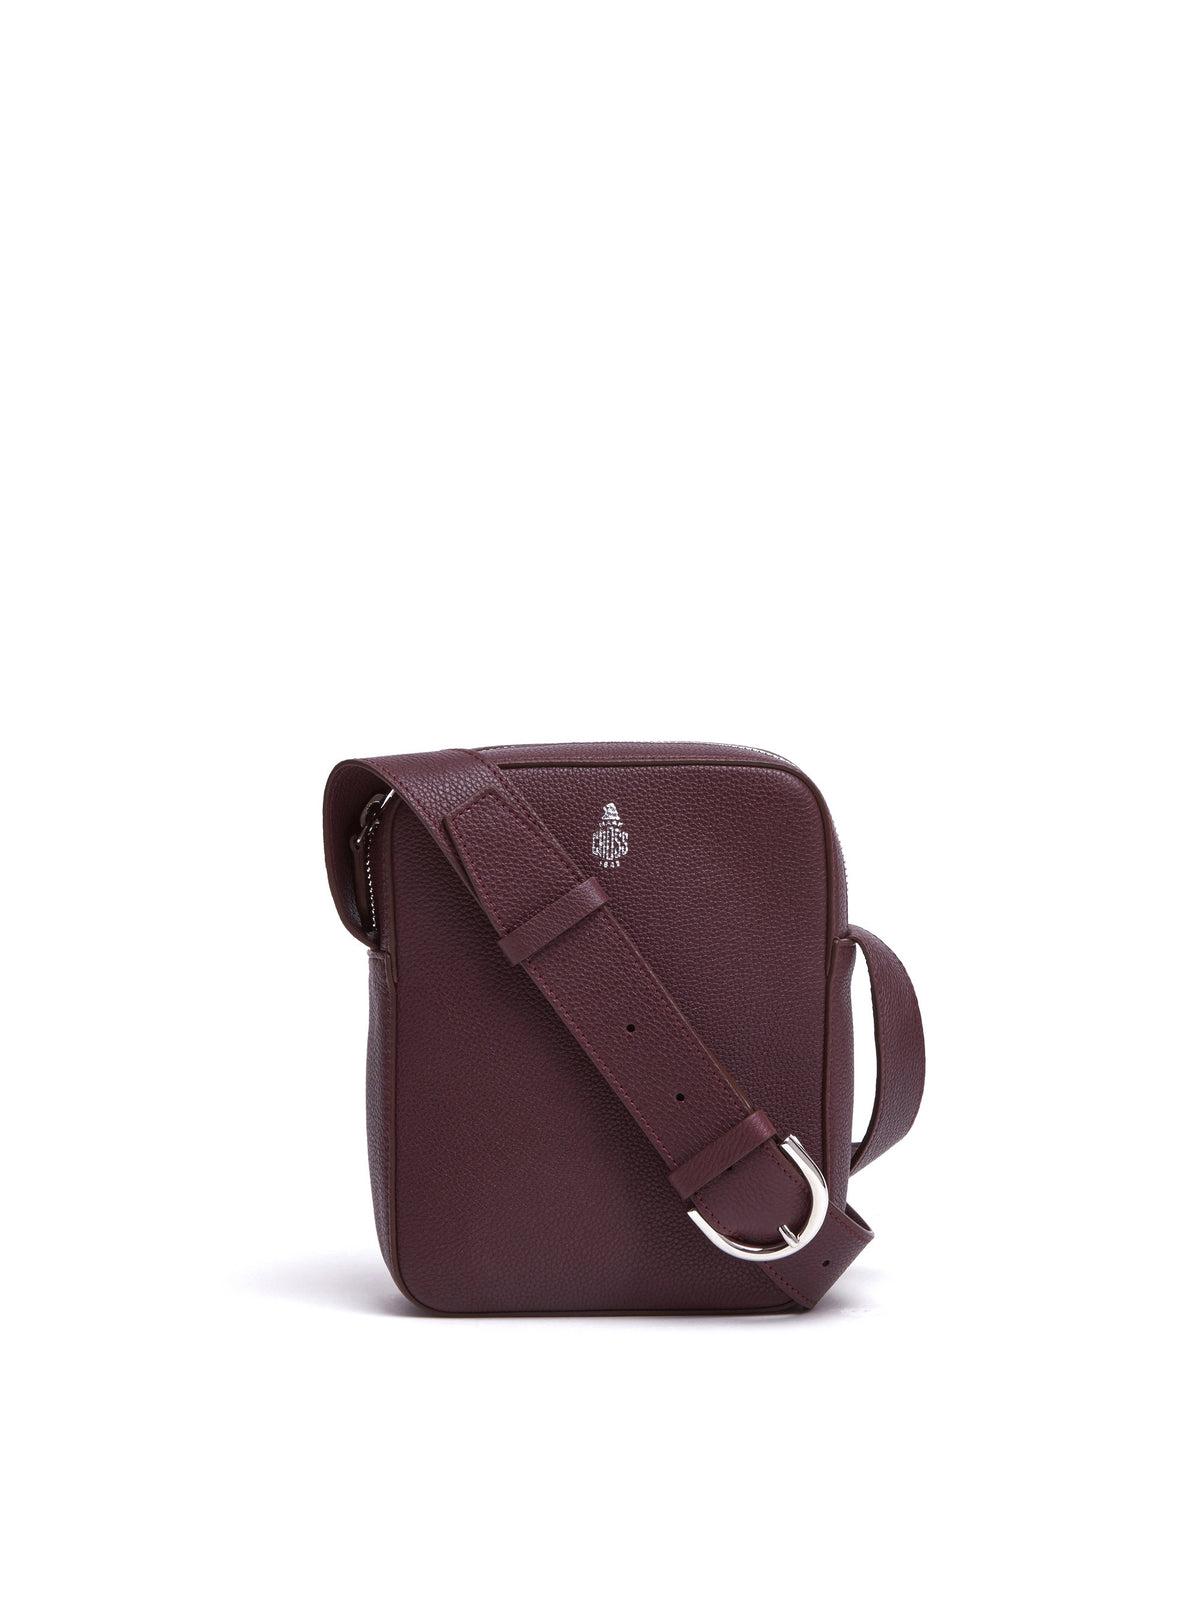 Mark Cross Baker Small Leather Crossbody Bag Tumbled Grain Bordeaux Front